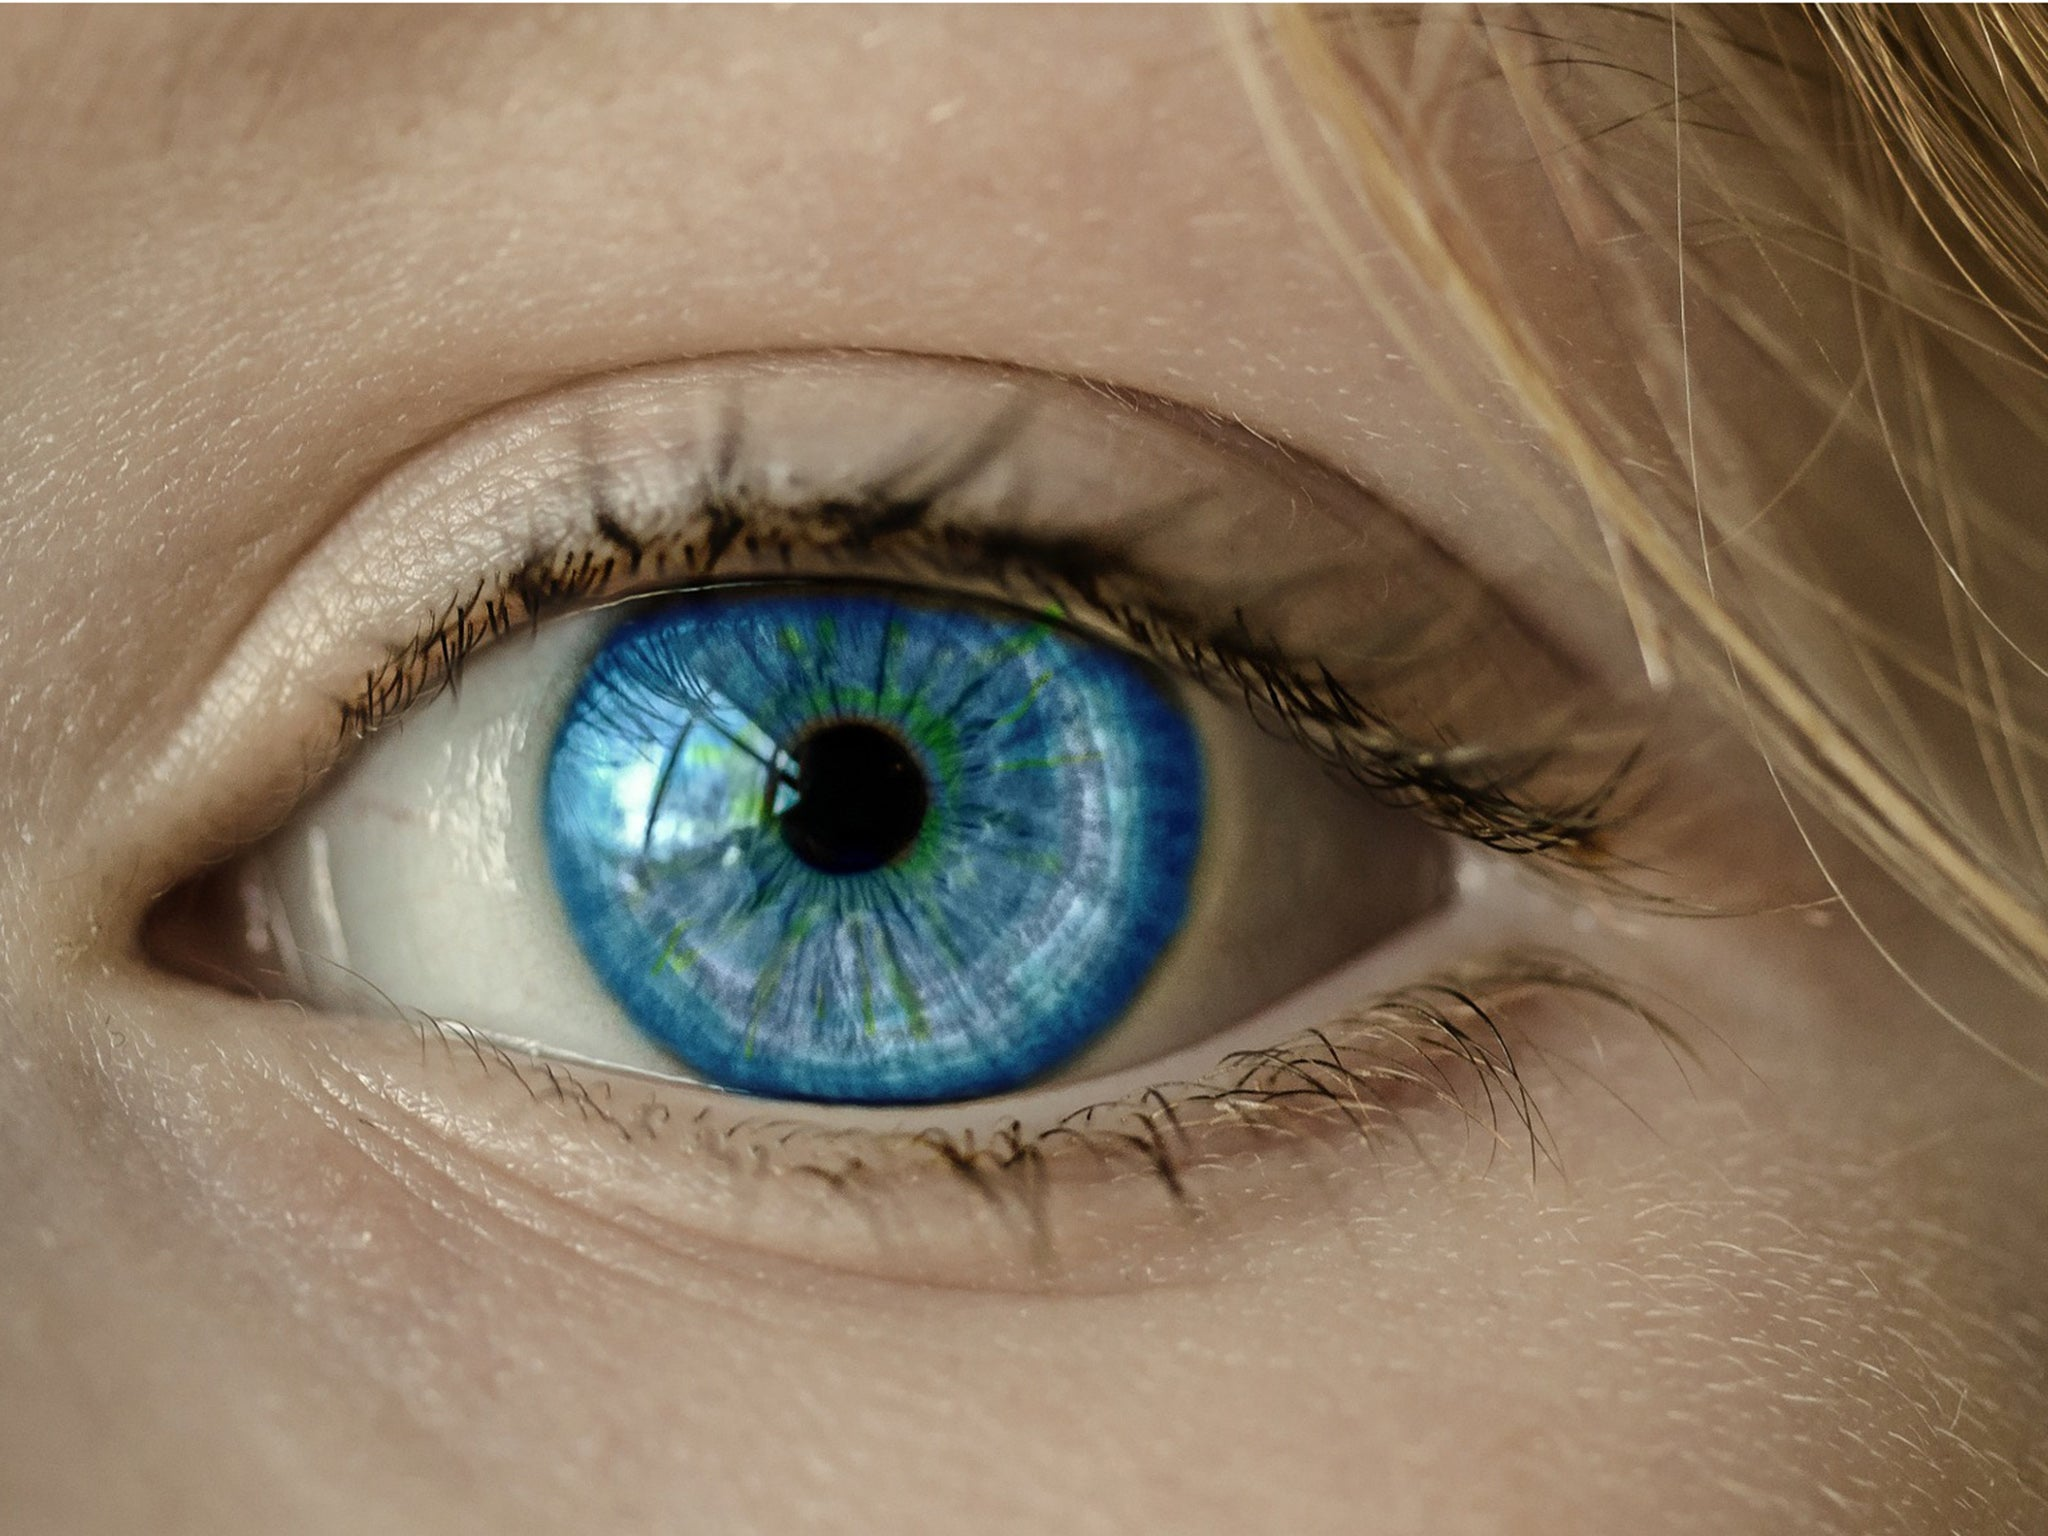 What causes floaters in the eye? | The Independent